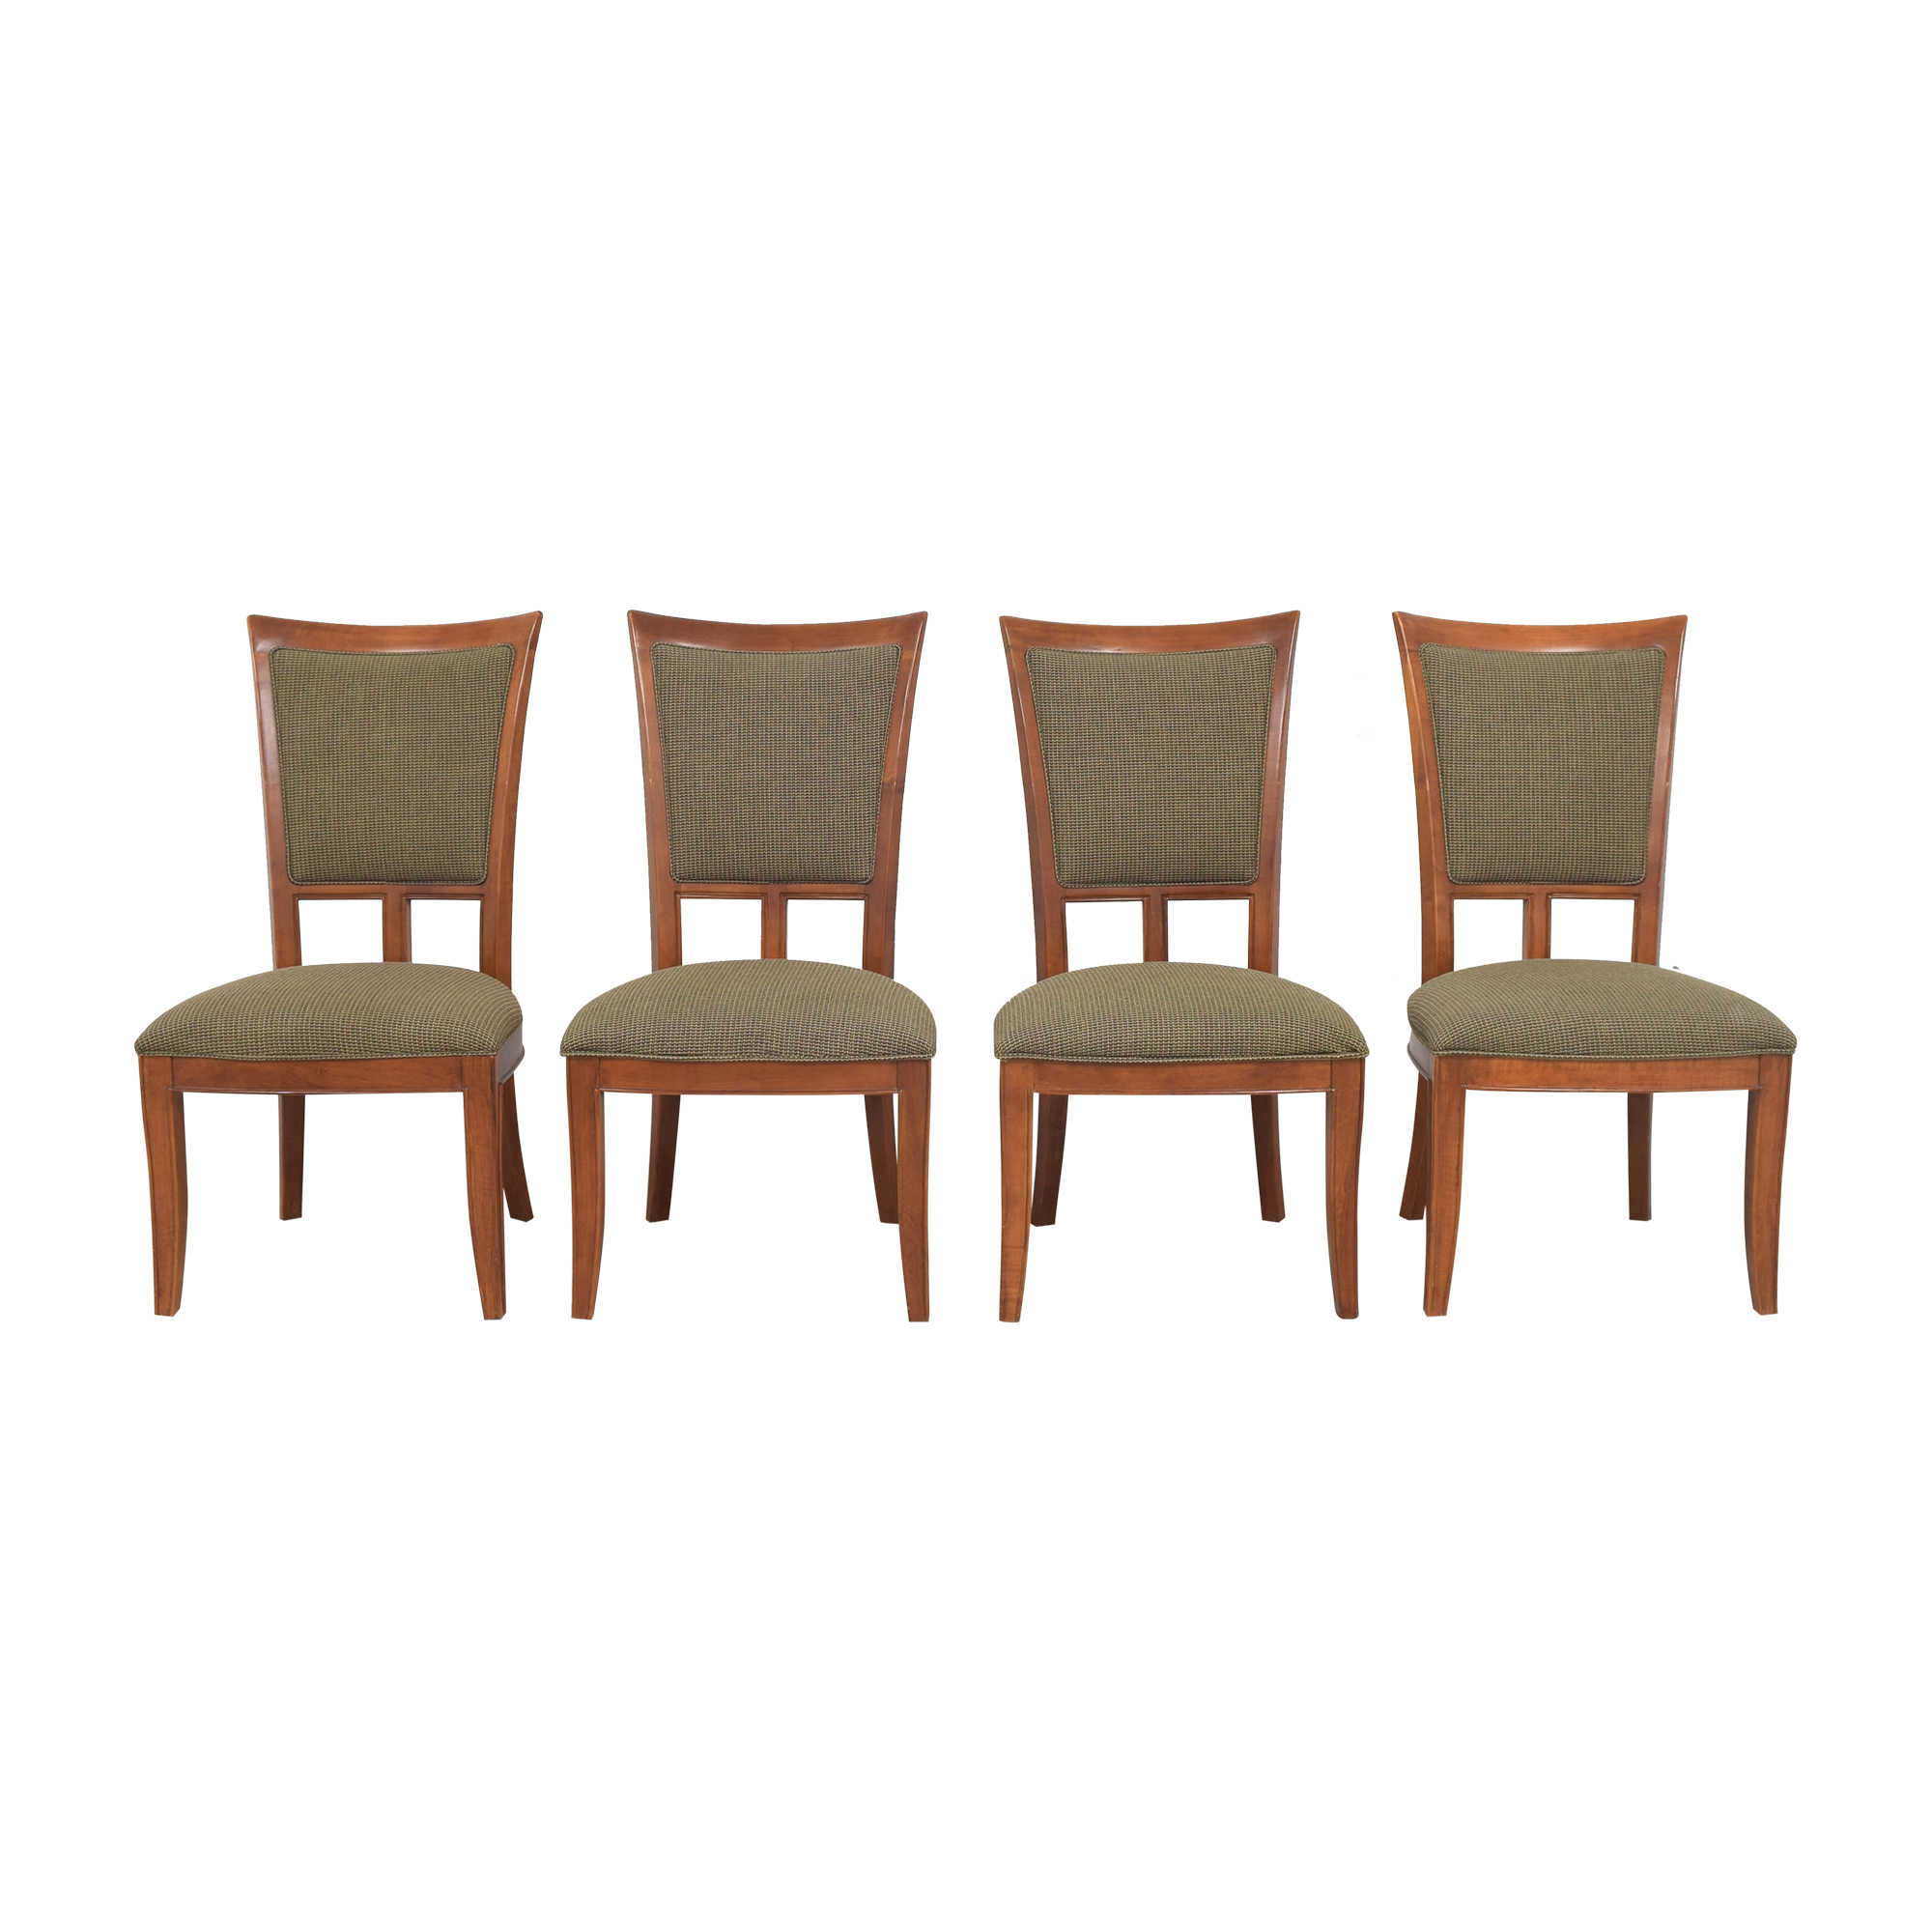 Stanley Furniture Stanley Furniture Upholstered Dining Side Chairs discount